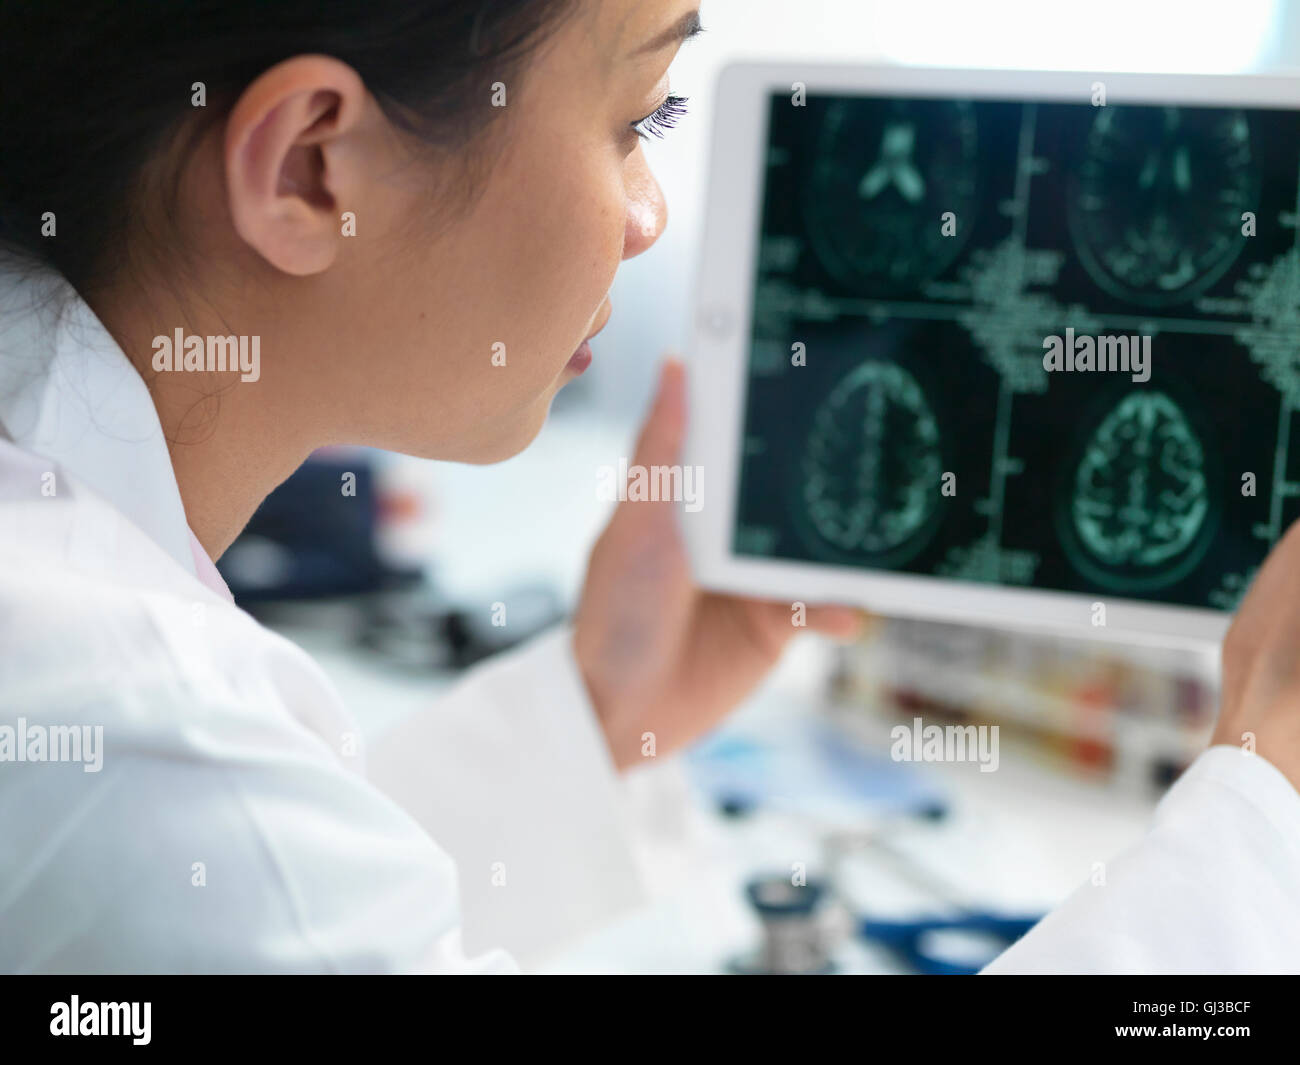 Doctor viewing CT scan result of brain on digital tablet for abnormalities - Stock Image